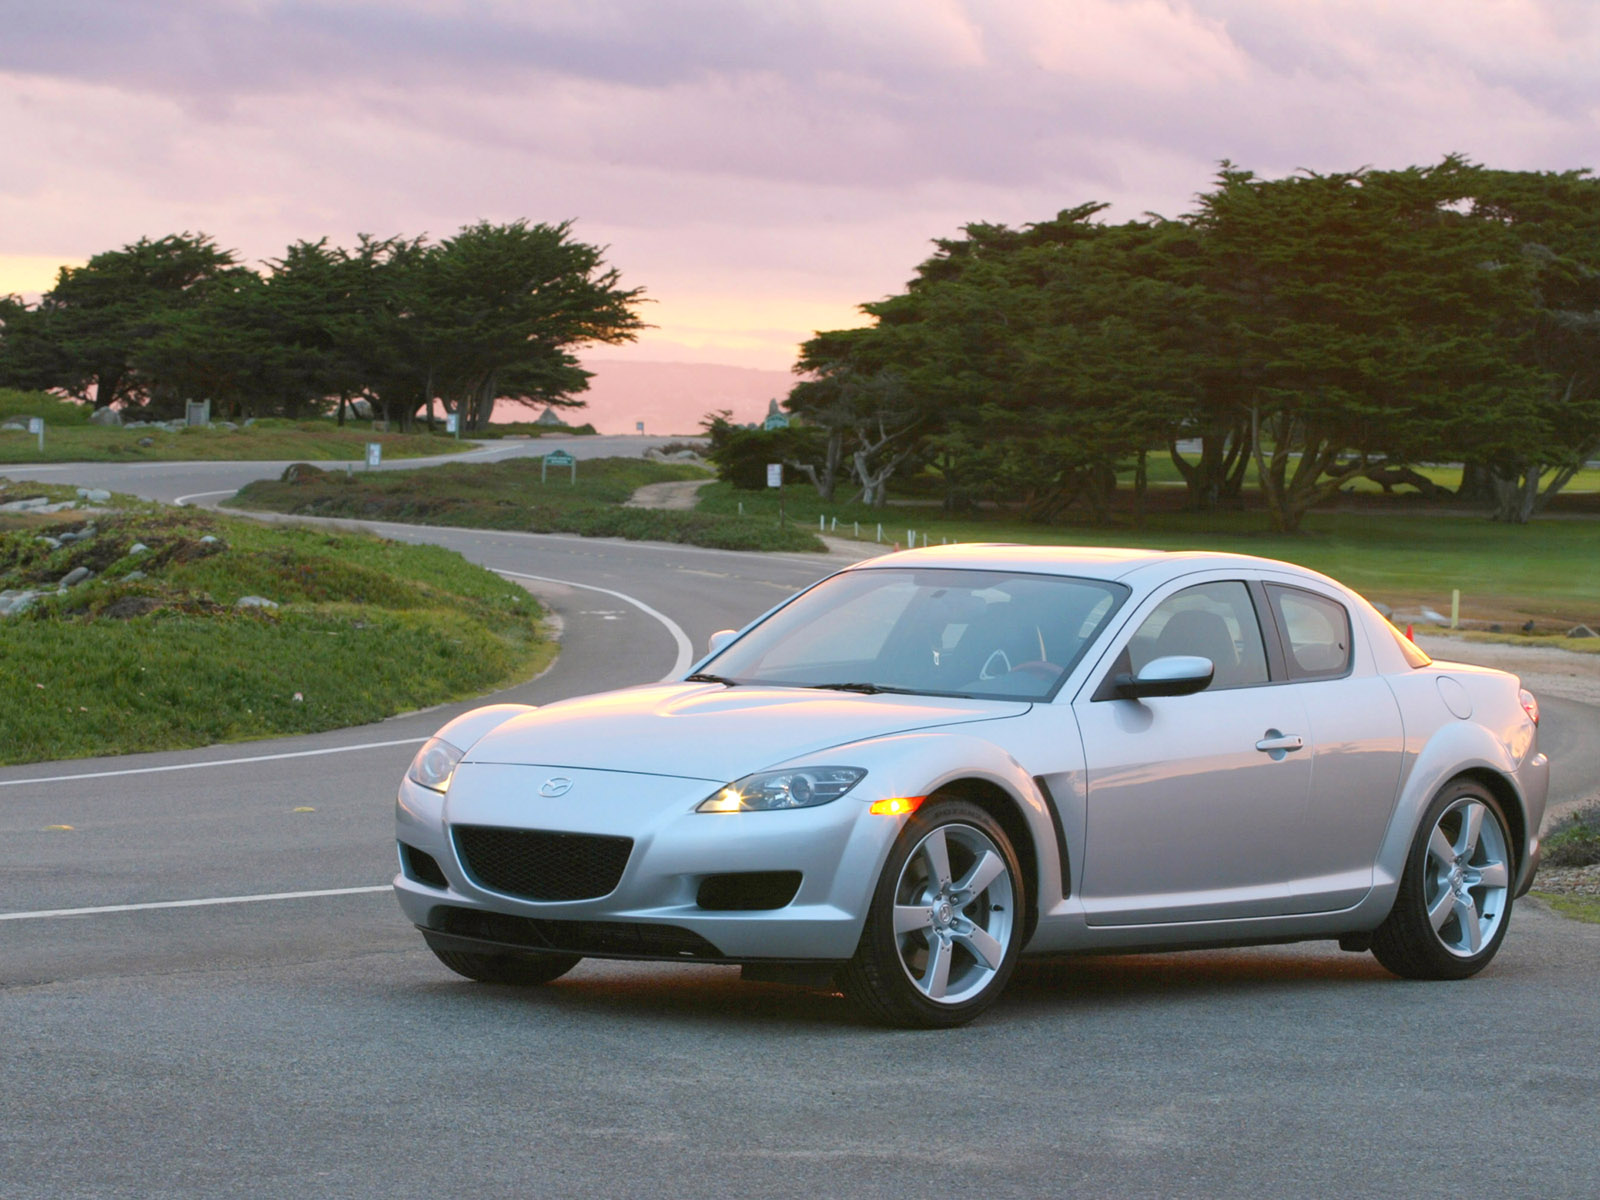 2005 mazda rx-8 image. https://www.conceptcarz/images/mazda